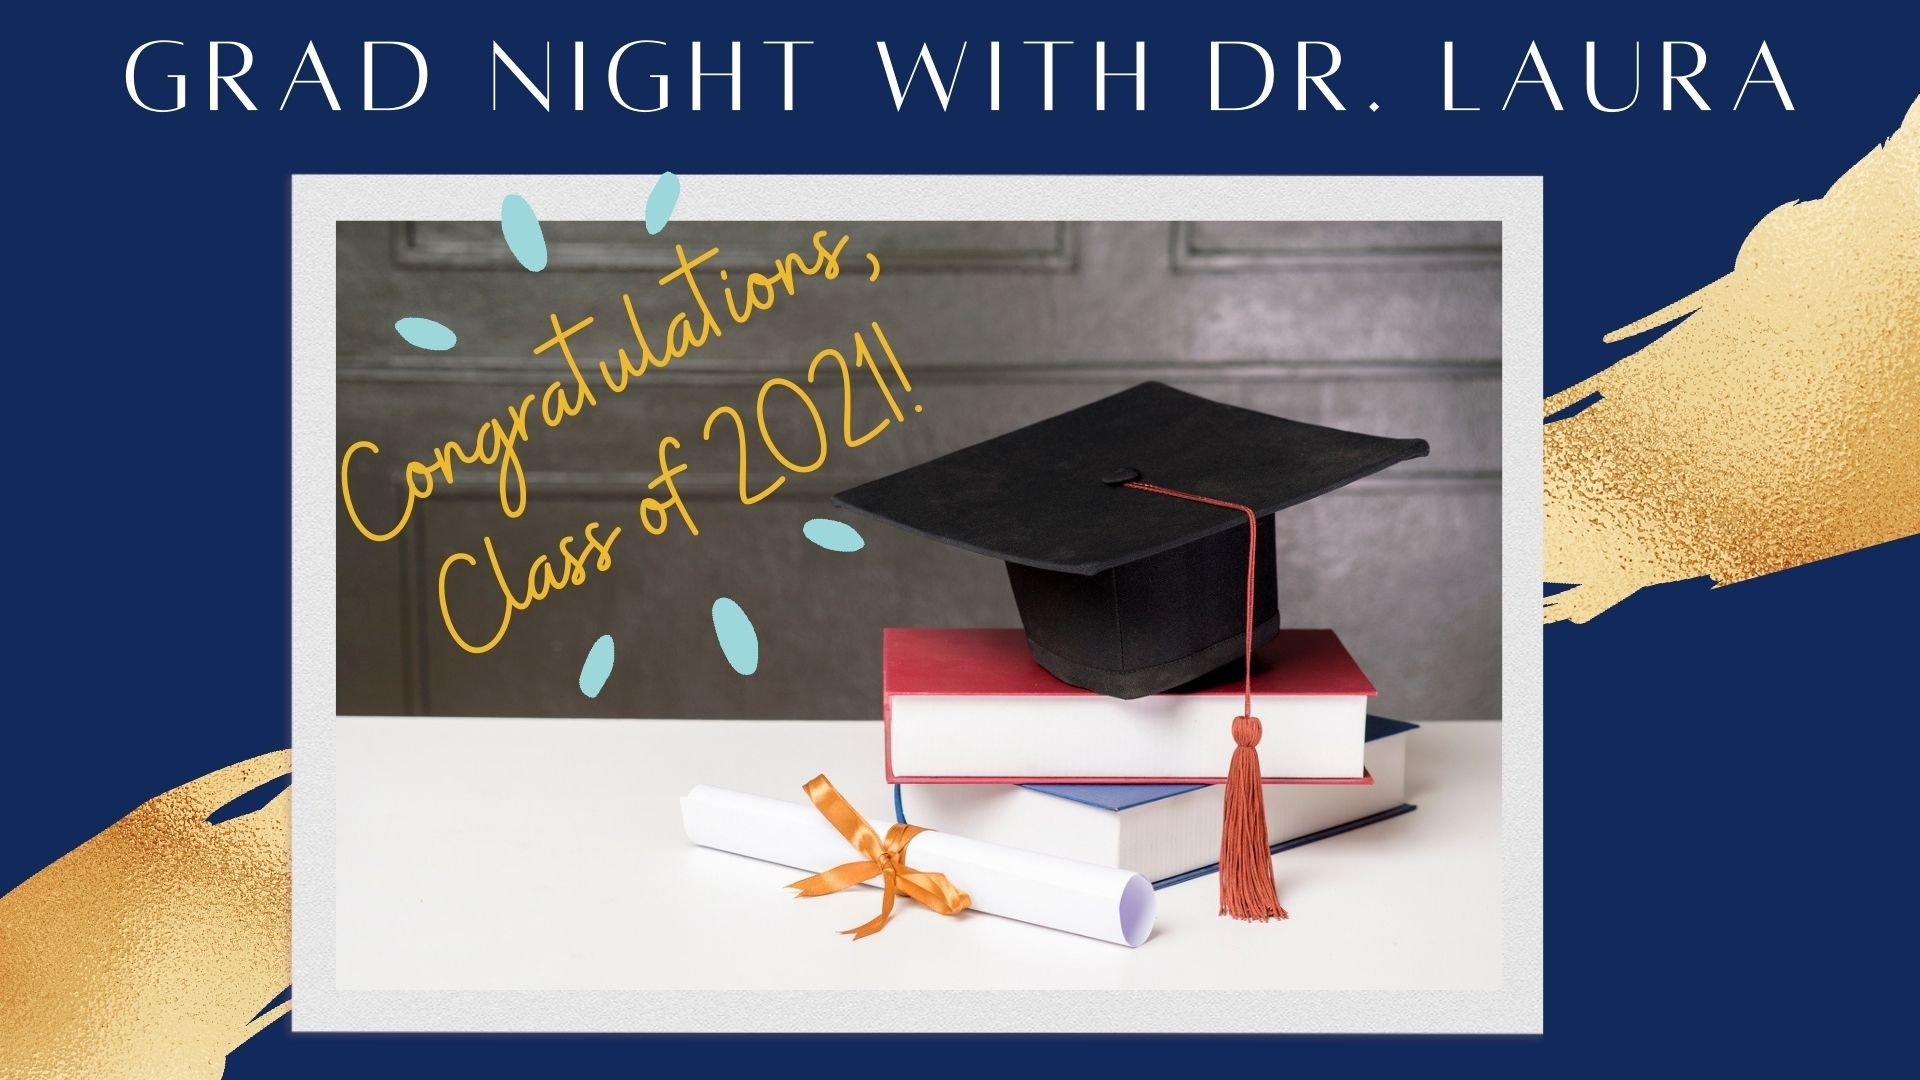 YouTube: Grad Night with Dr. Laura